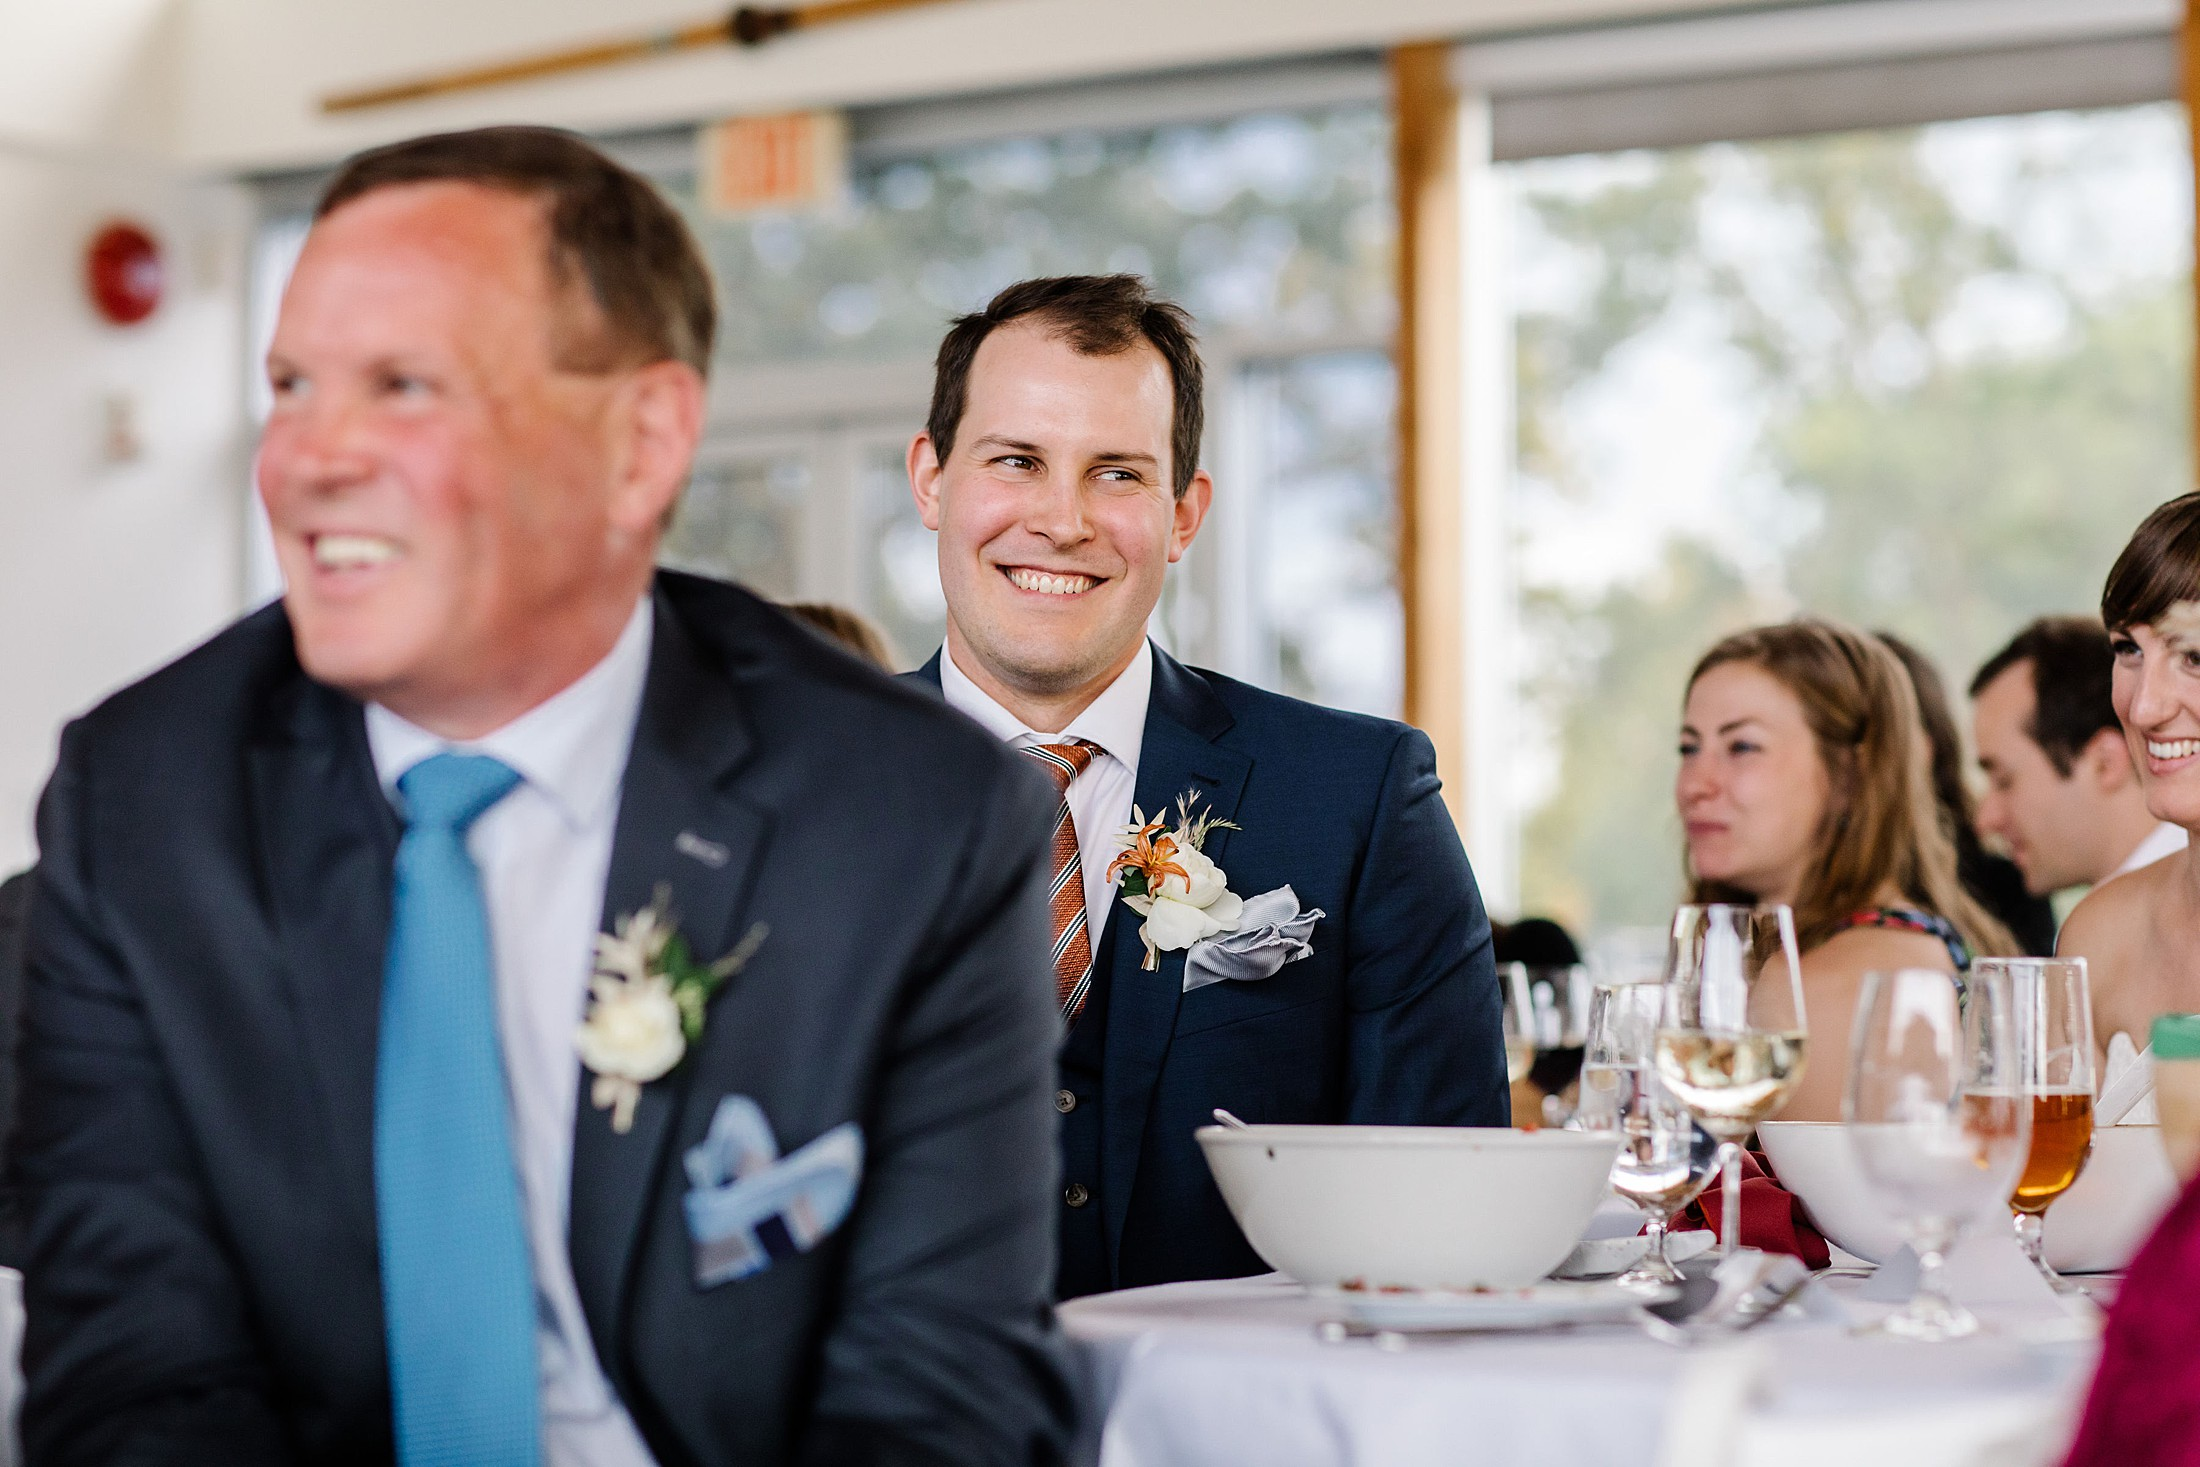 June23.DavidElena39256_Note Photography Documentary Photographer Wedding Photos Vancouver B.C. Best 2019 2020 Vancouver Island UBC Boathouse Tacofino Catering Richmond Floralista Man About Town DJ Outdoor Ceremony.jpg